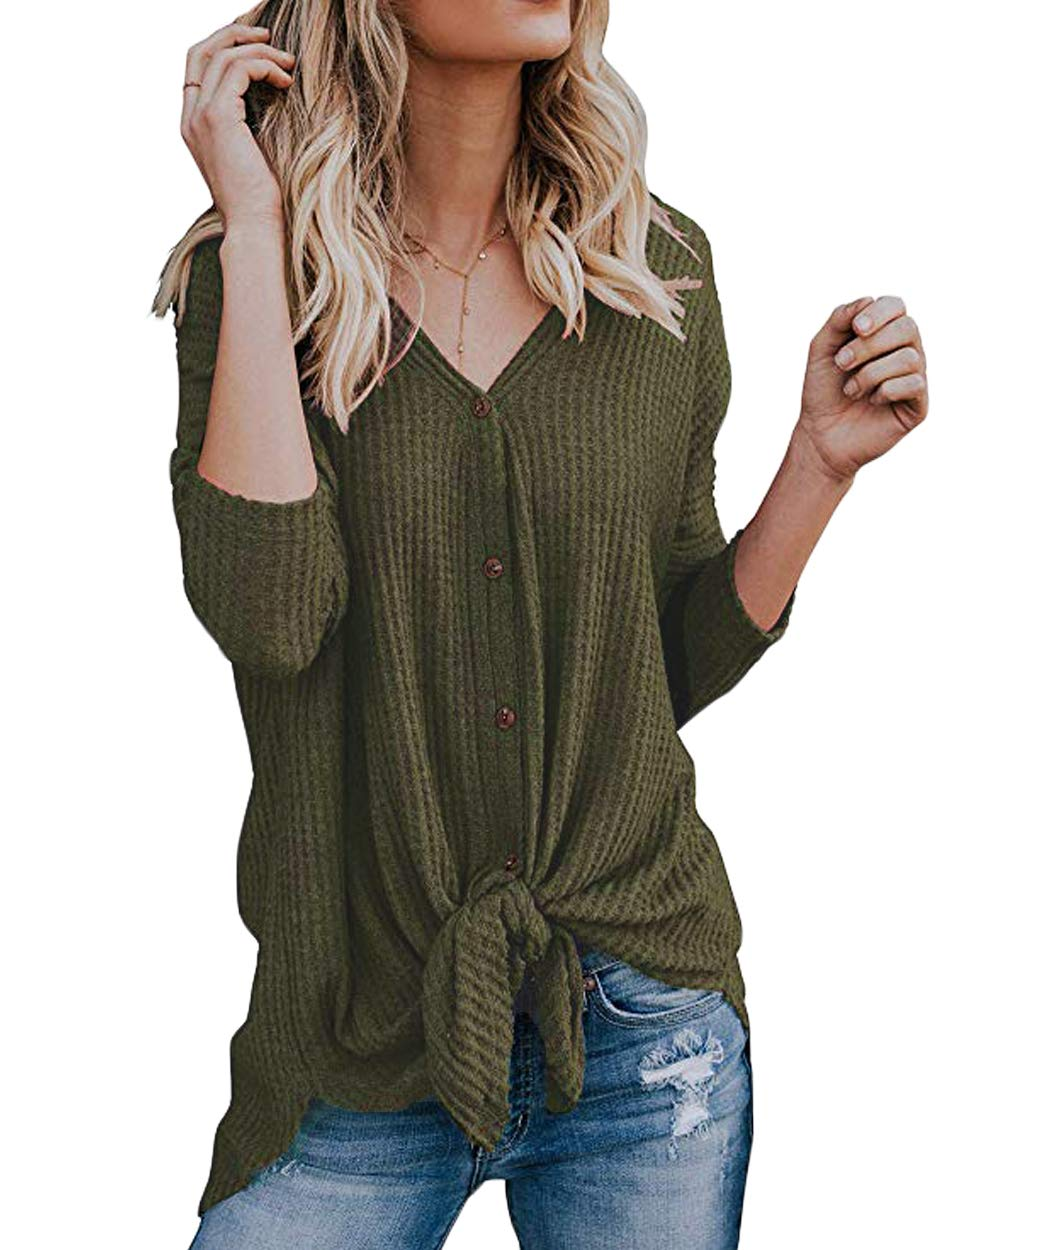 Eanklosco Tie Knot Tops Womens Waffle Knit V Neck Blouse Button Down Long Sleeve Henley Shirt (Army Green, XXL)